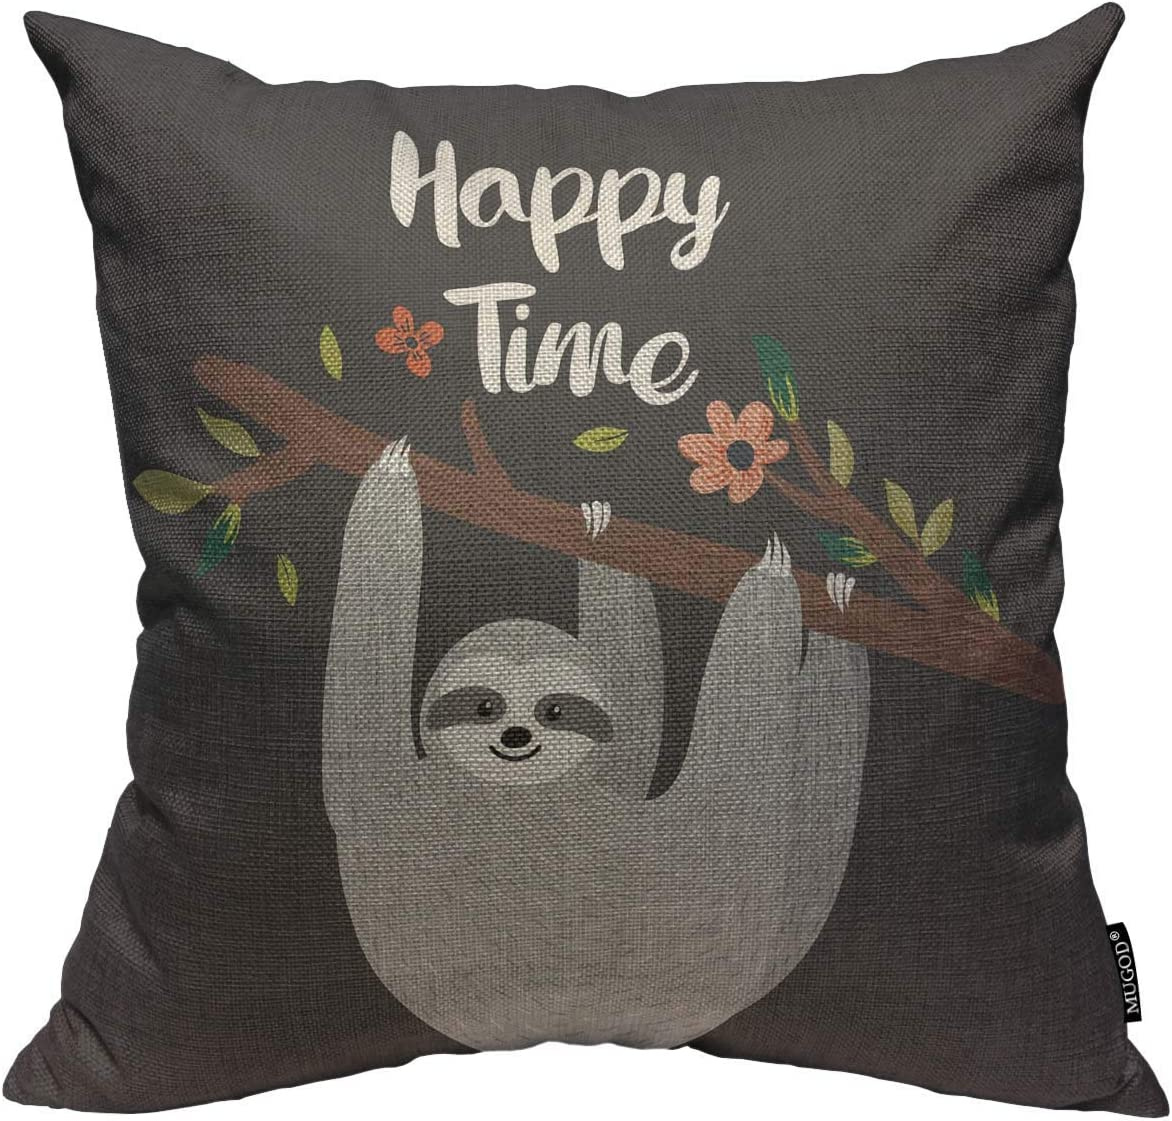 Mugod Grey Sloth Throw Pillow Cover Happy Time Design with Funny Sloth Hanging on The Tree Decorative Square Pillow Case for Home Bedroom Living Room Cushion Cover 18x18 Inch